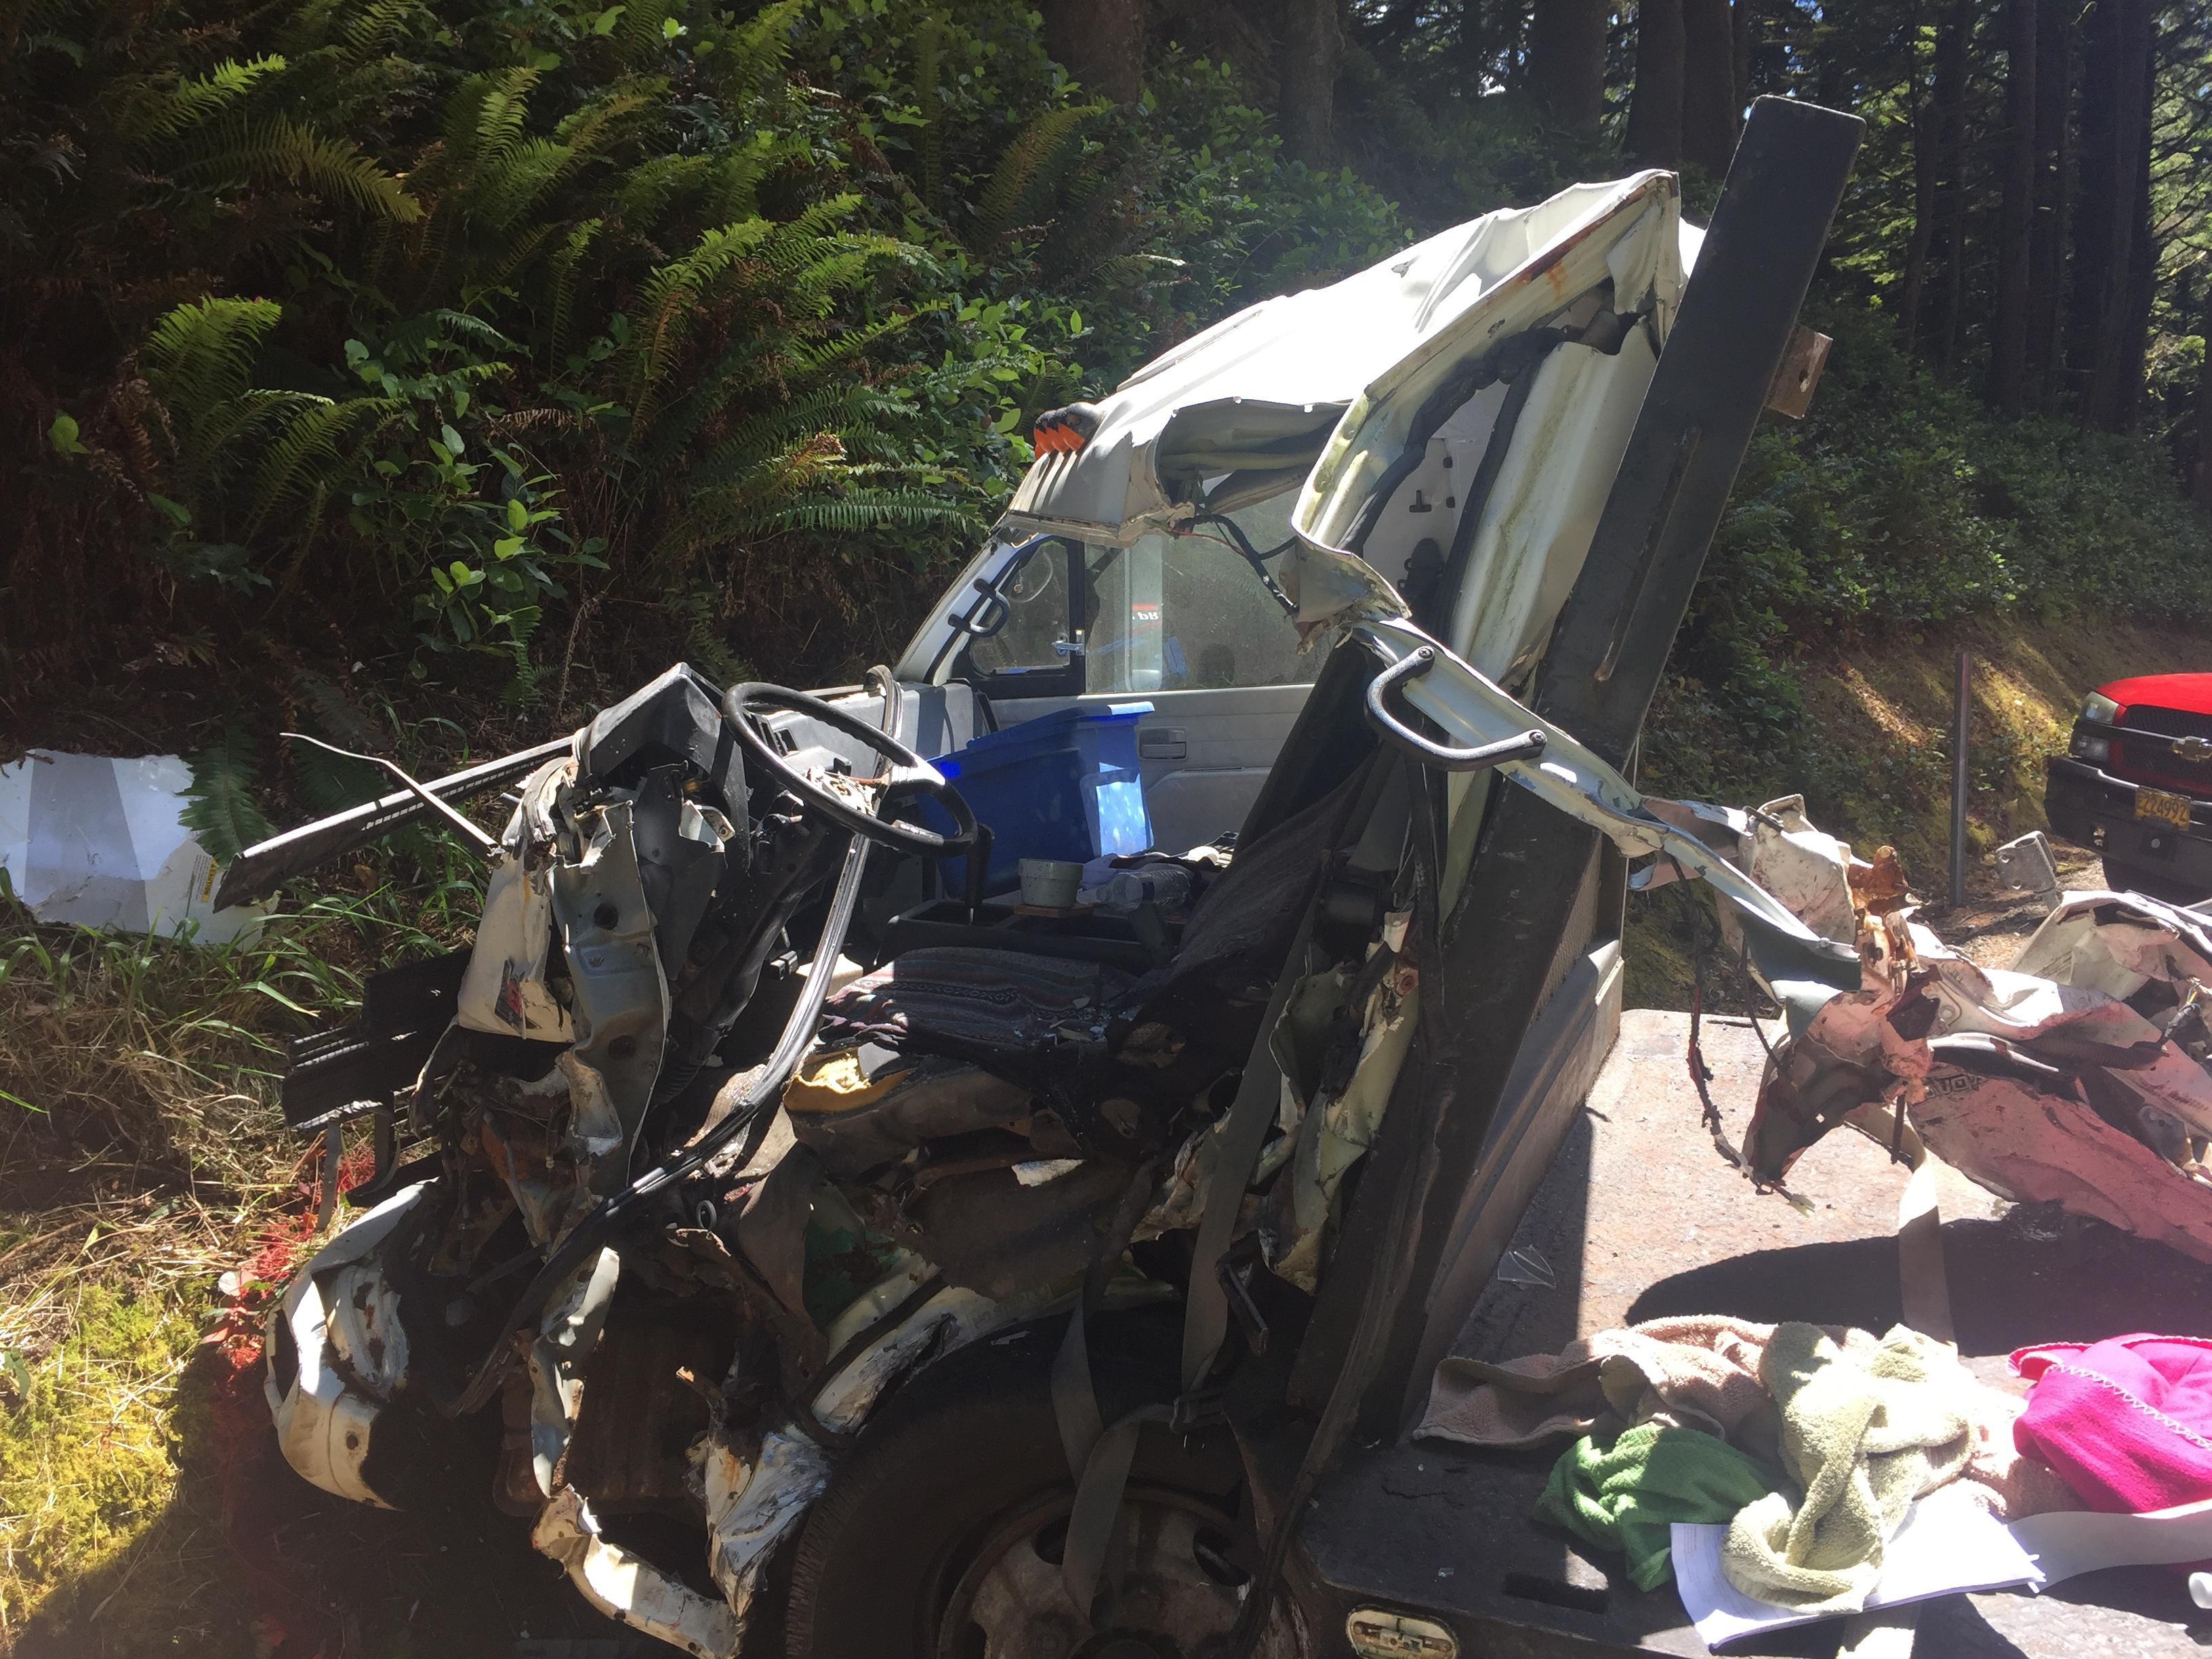 State police said a commercial truck collided with a RV trailer being towed behind a truck. A third vehicle was also involved. (Siuslaw Valley Fire & Rescue)